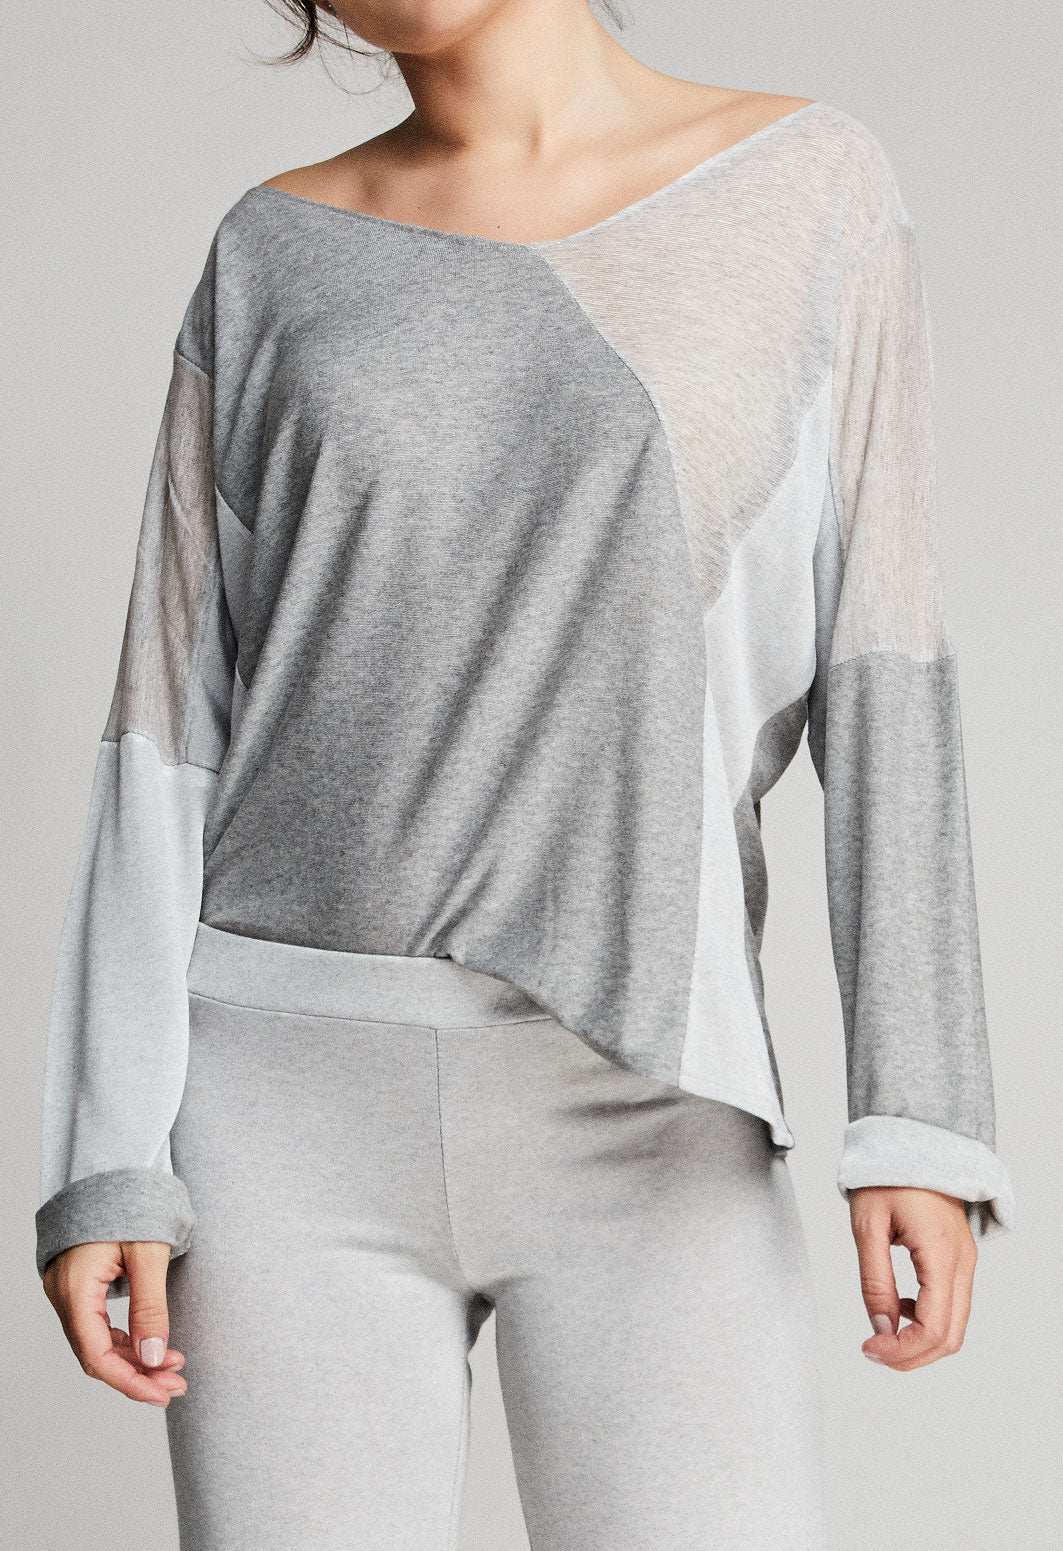 Jersey color gris perla para mujer